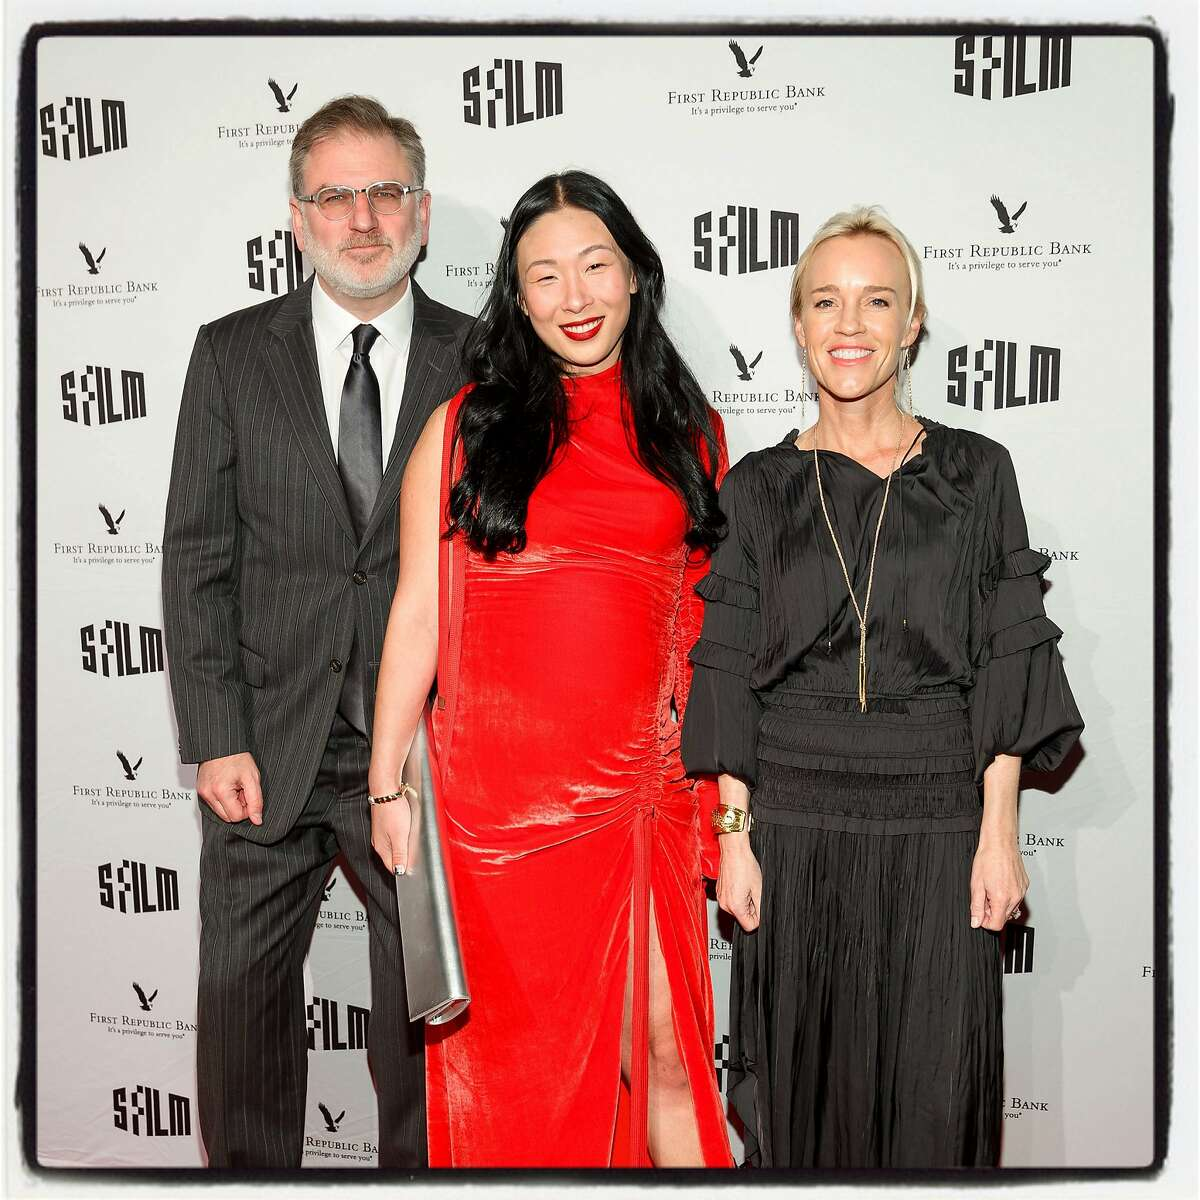 SFFilm Executive Director Noah Cowan with Film Awards cochairs Sonya Yu (left) and Heidi Fisher at Palace of Fine Arts. Dec. 5, 2017.